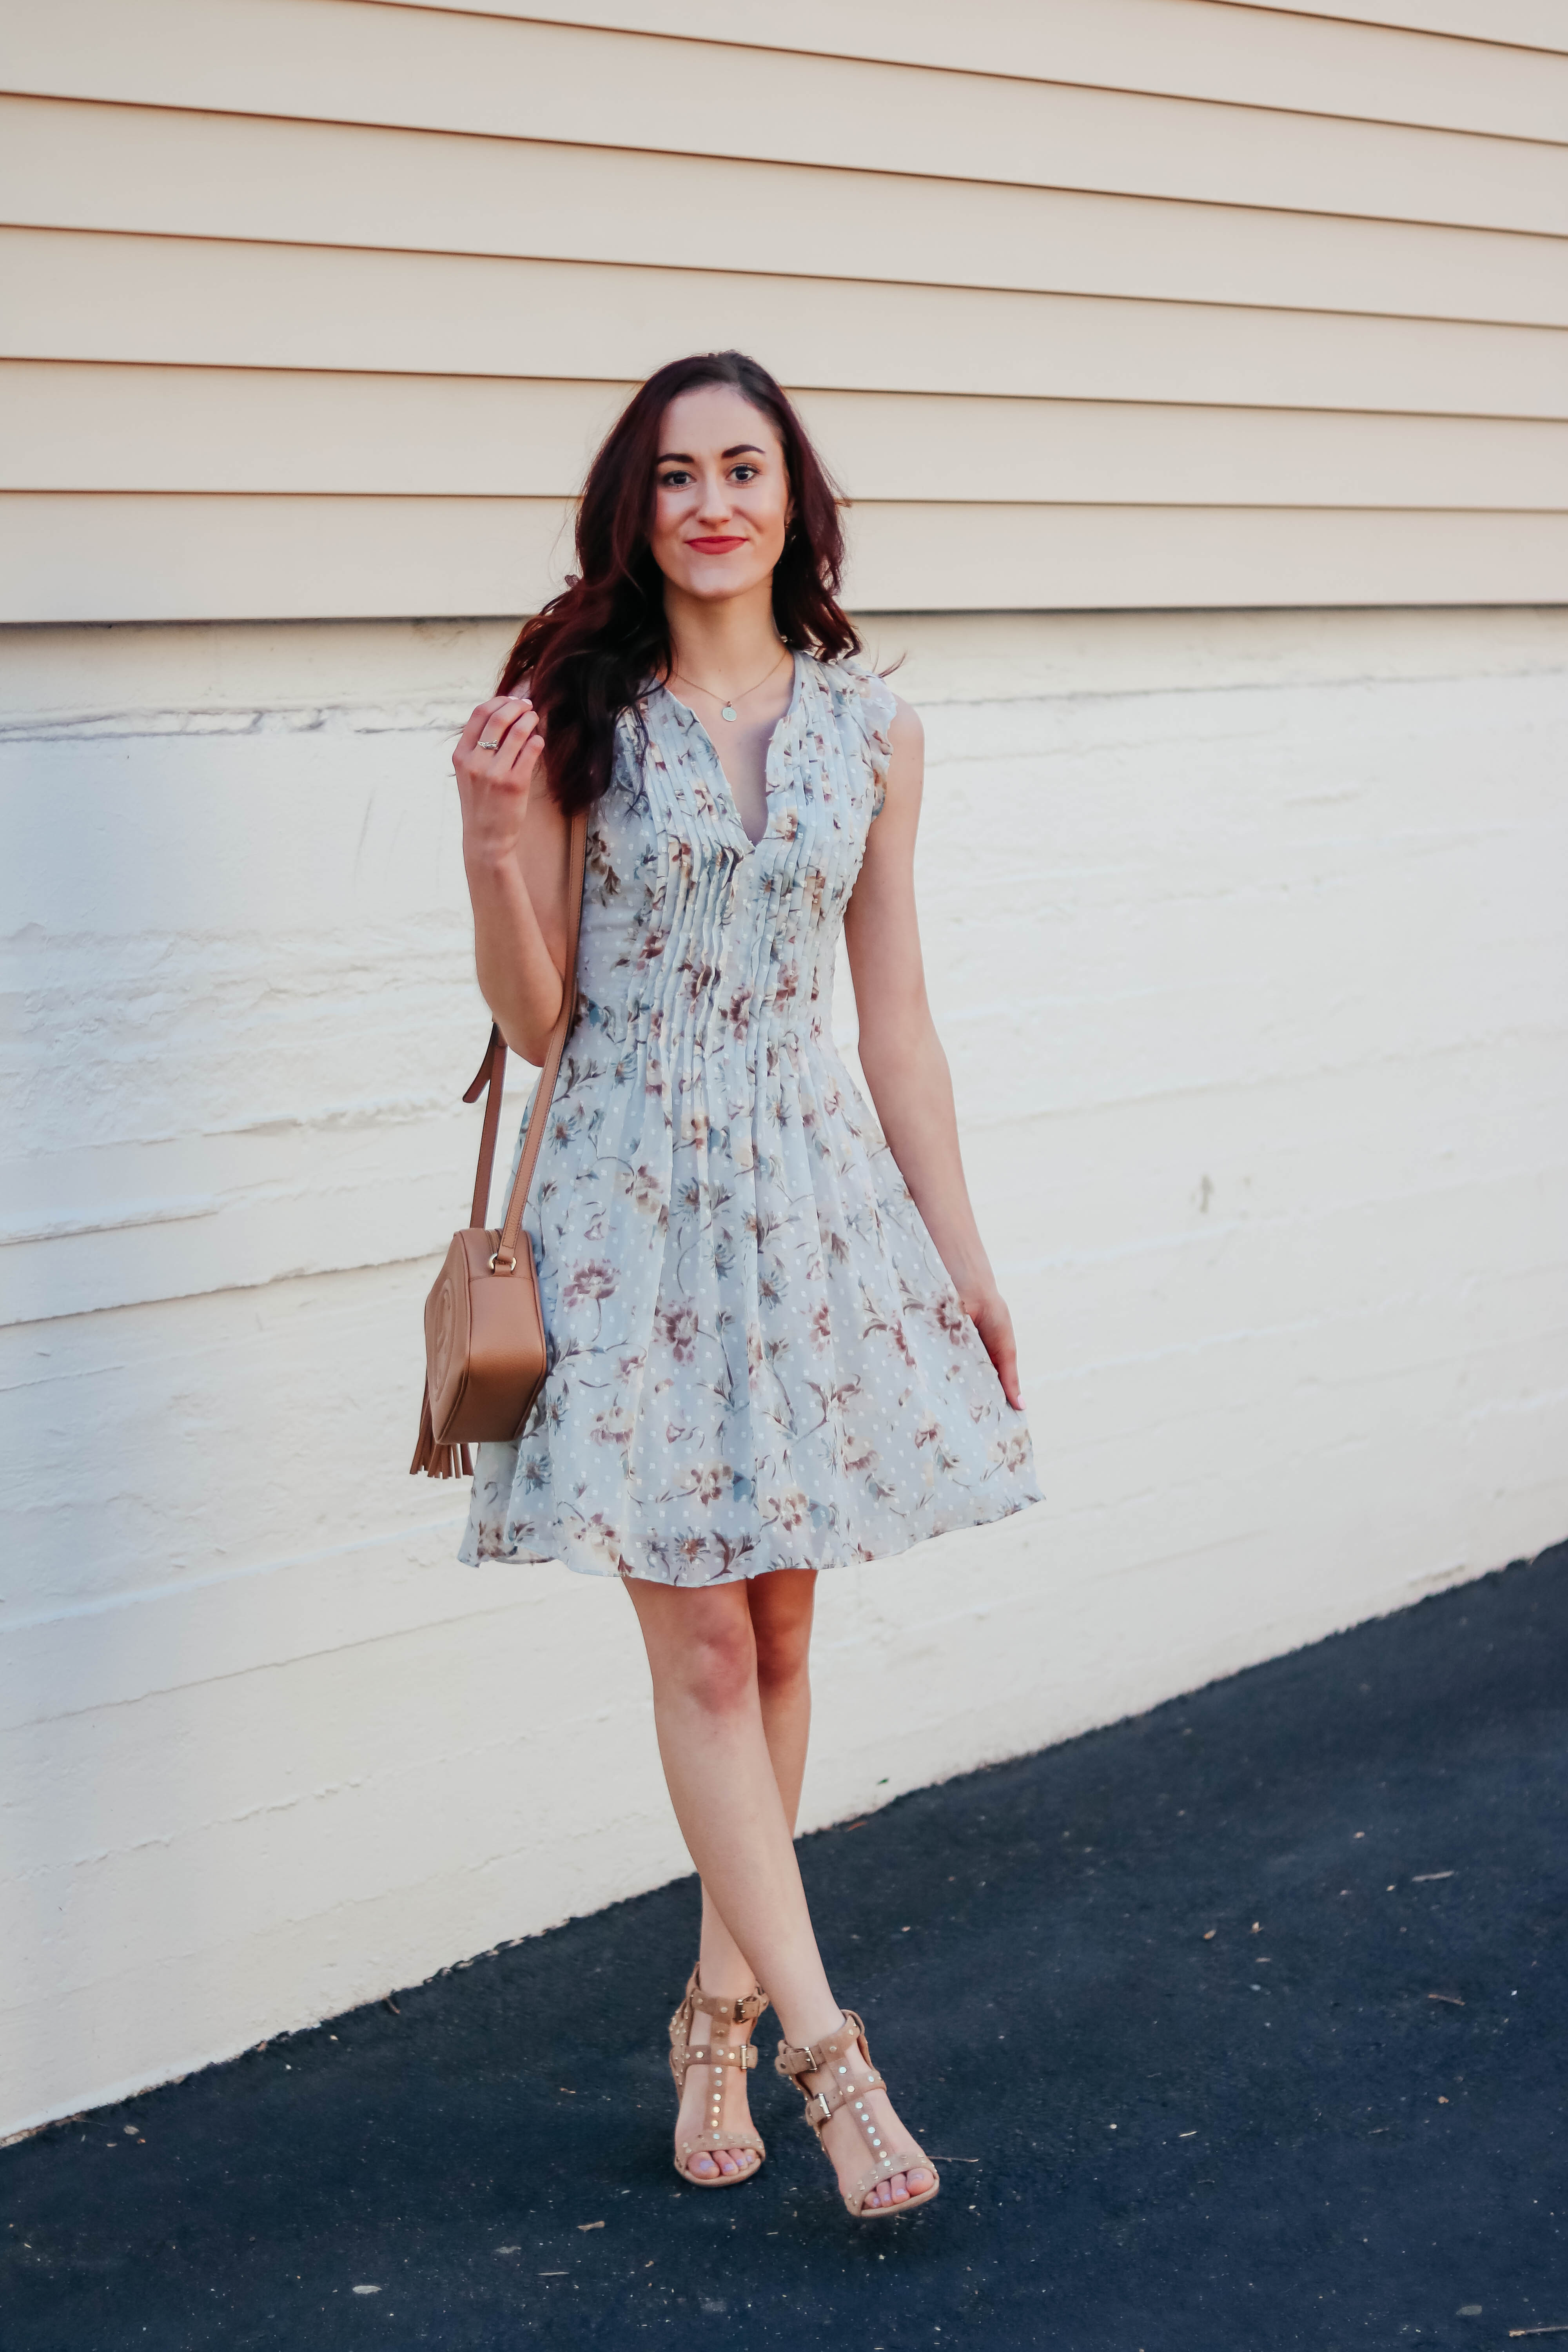 15 Easter Dresses Under $75 - Great Family-Friendly Easter Dress Options on Coming Up Roses